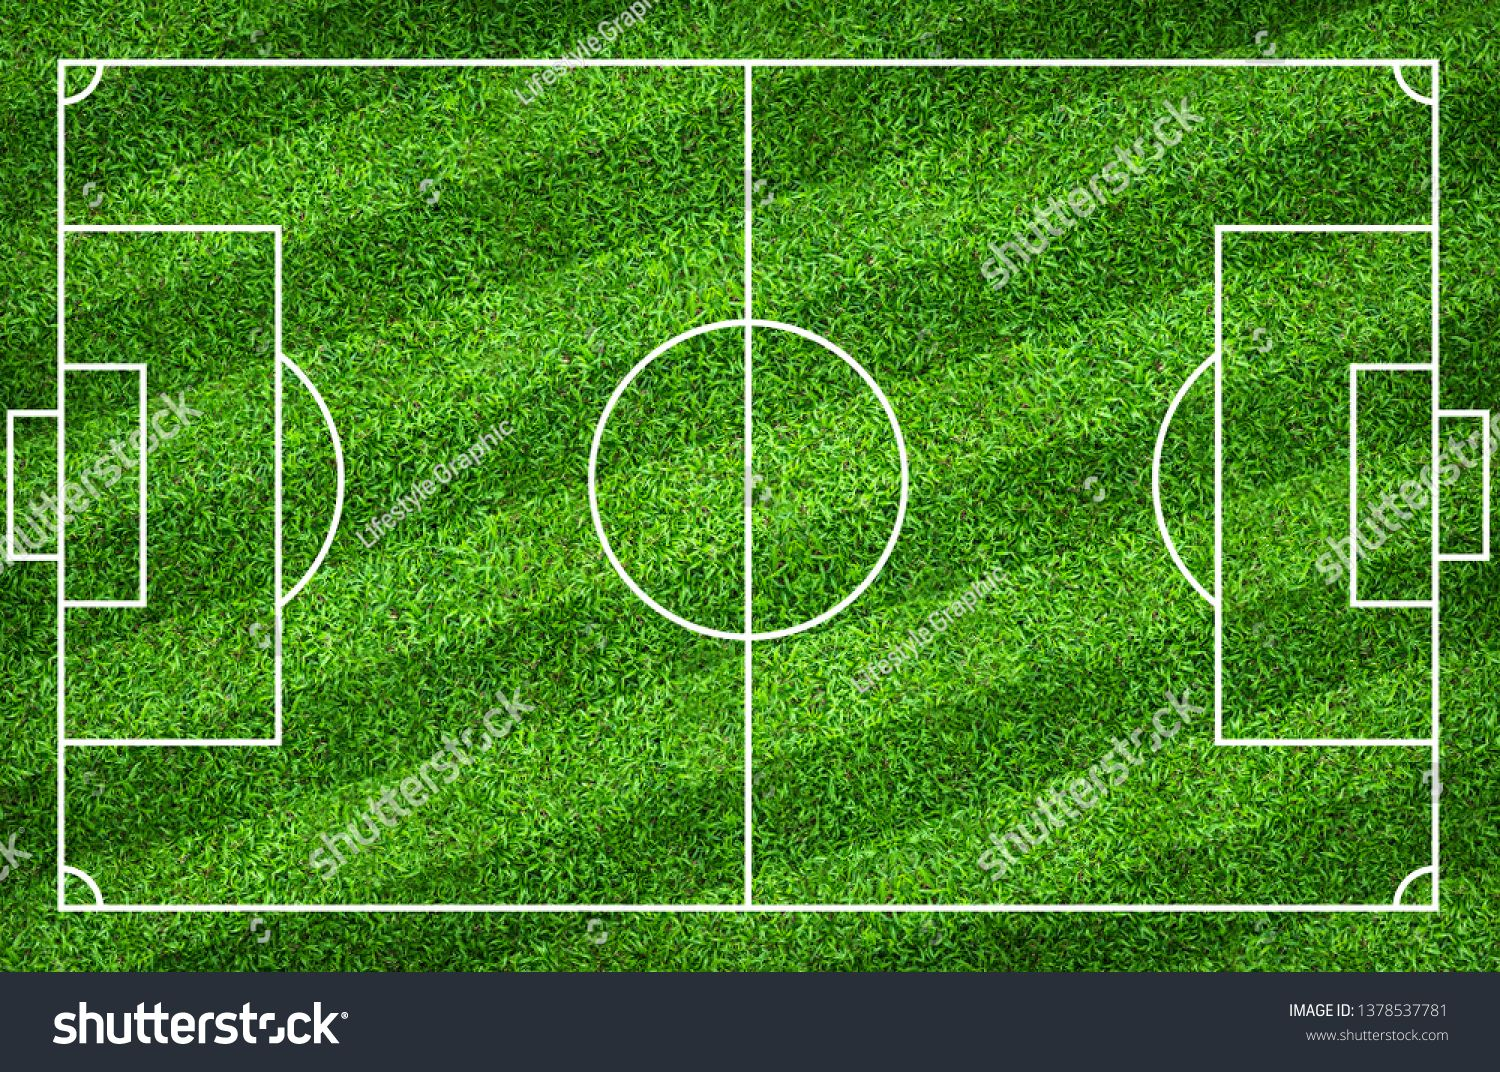 Football Field Or Soccer Field For Background Green Lawn Court For Create Sport Game Ad Affiliate Background Green S Football Field Soccer Field Soccer